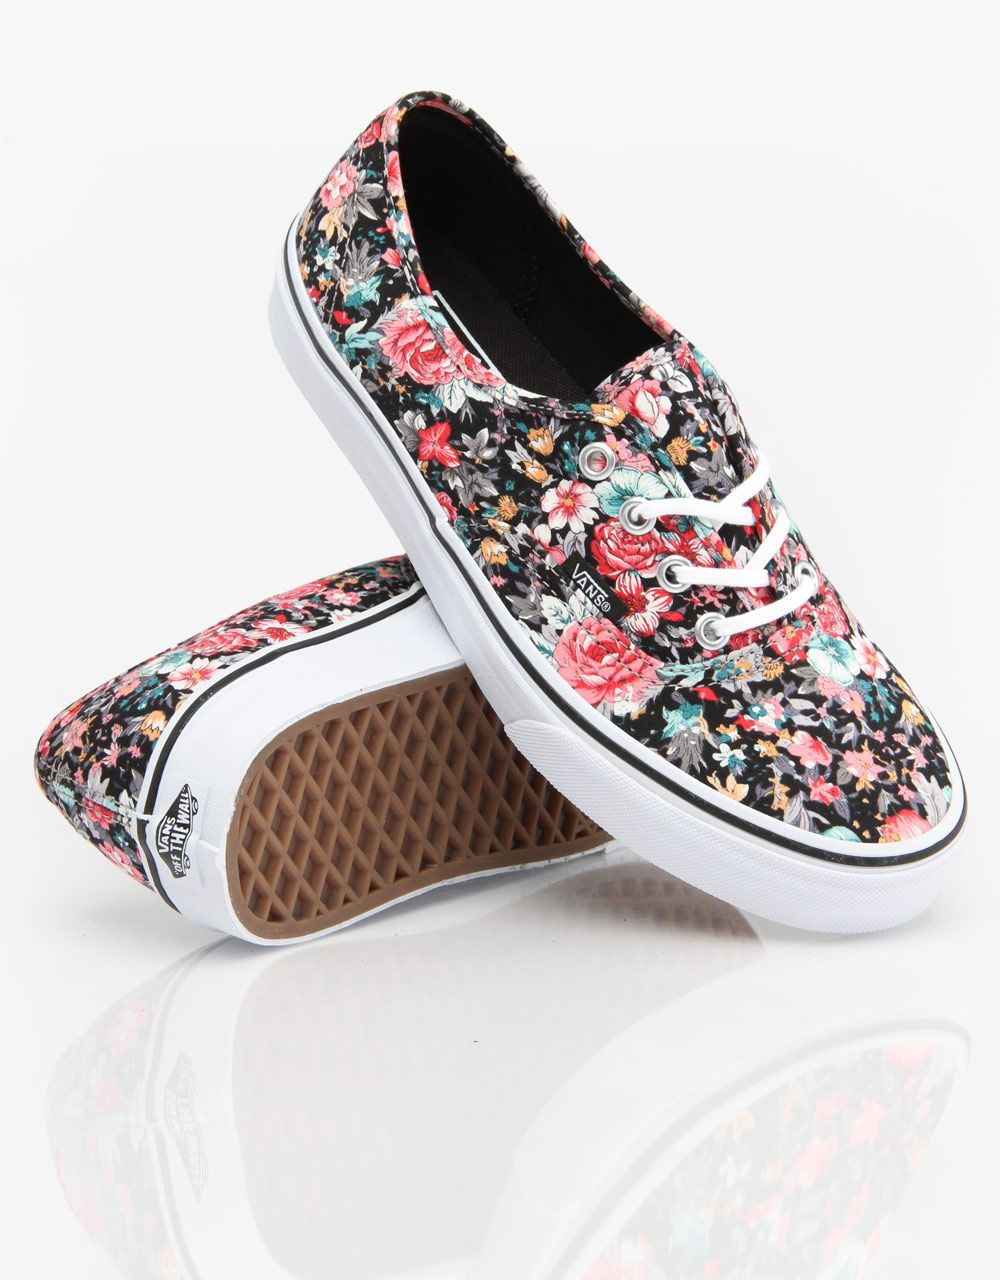 aefb28ad21 Vans Authentic Girls Skate Shoes - Multi Floral Black True White ...